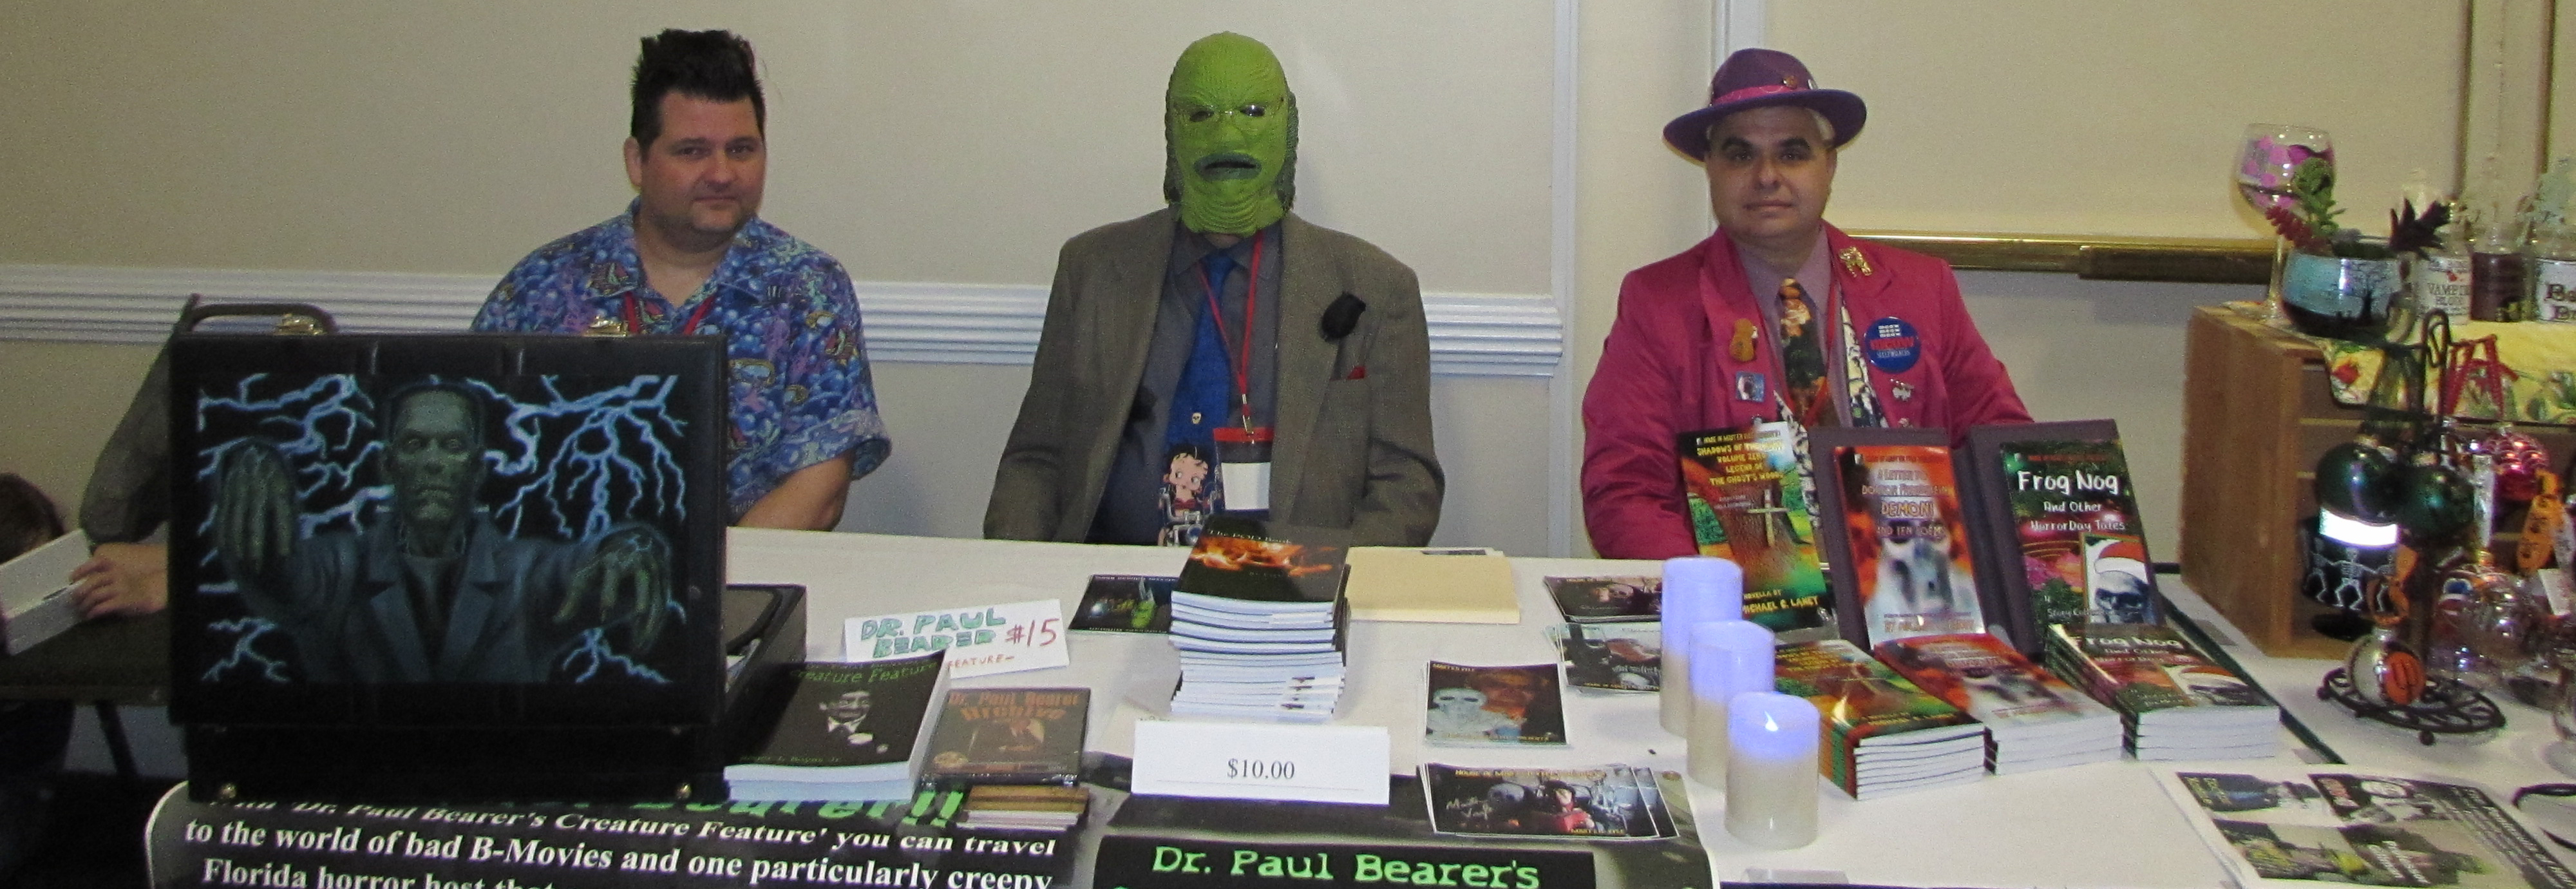 """Horror Host Meat-n-Greet"""" @ Oasis 27 Sci-Fi Convention"""